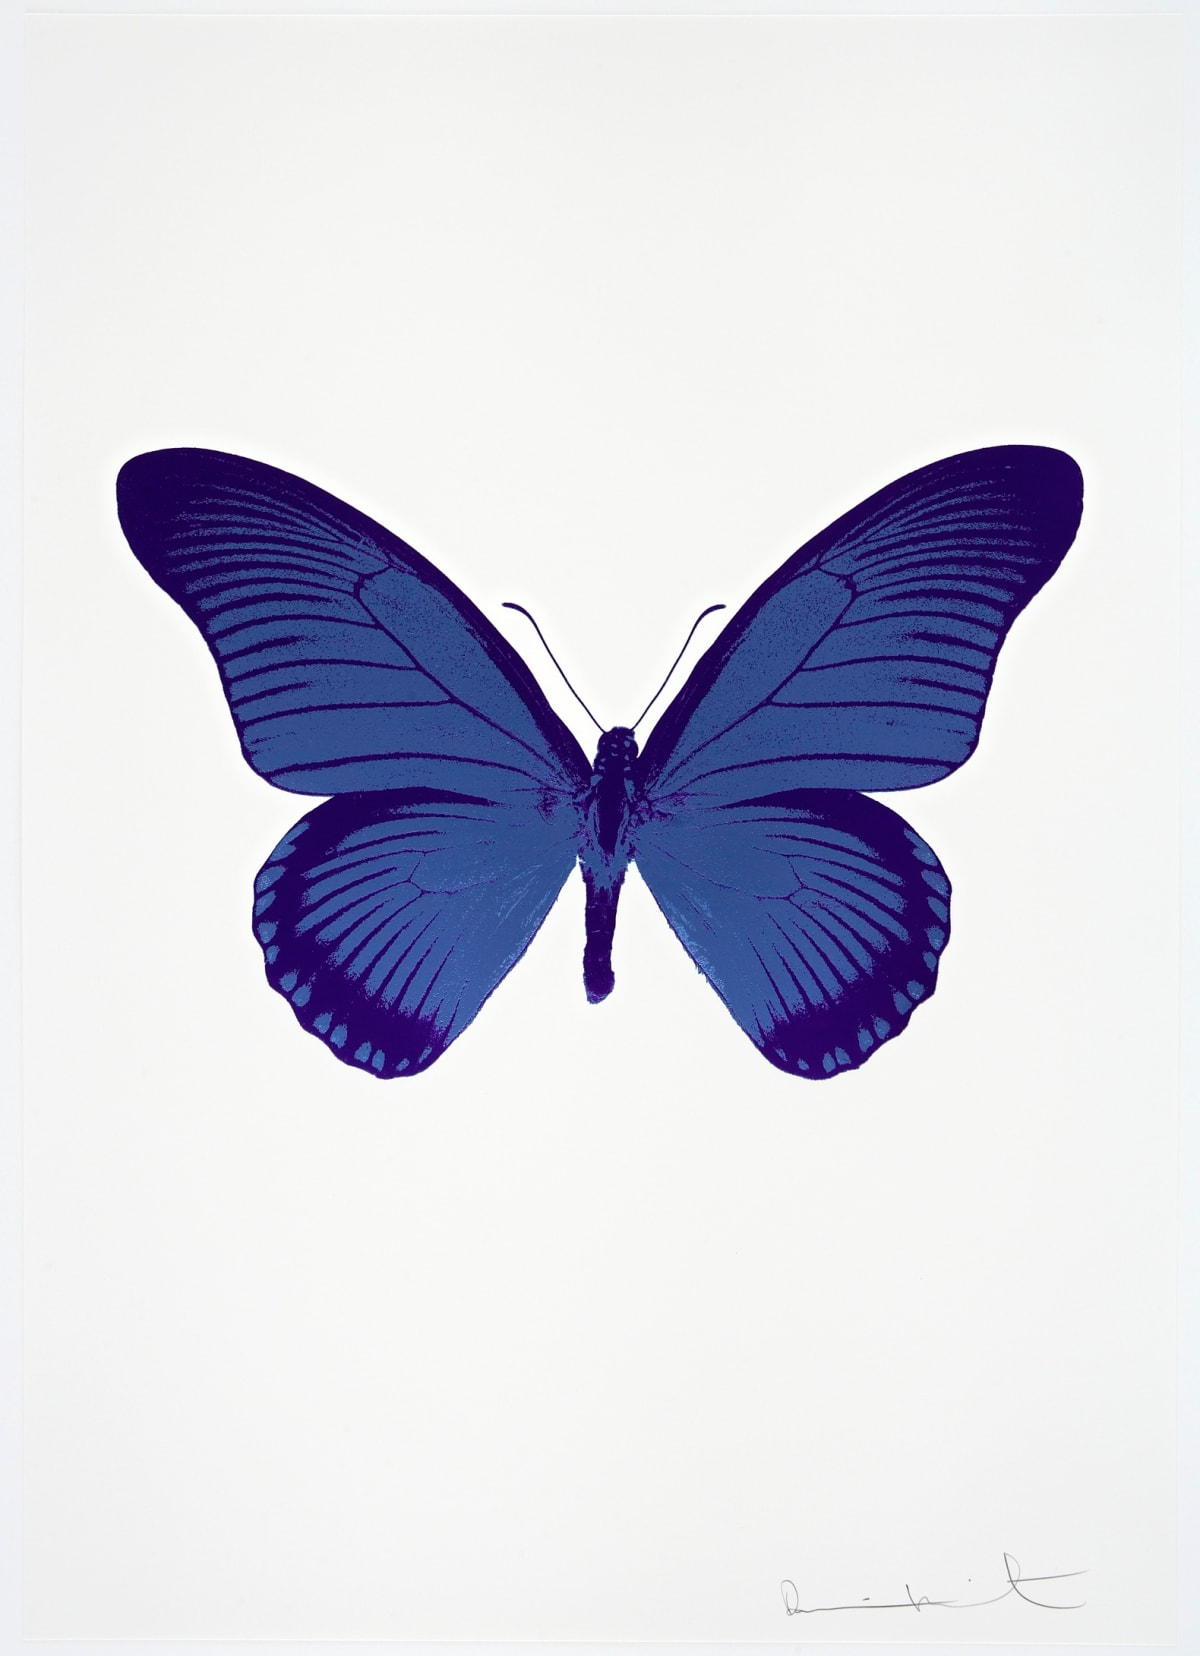 Damien Hirst The Souls IV - Frost Blue/Imperial Purple/Imperial Purple, 2010 3 colour foil block on 300gsm Arches 88 archival paper. Signed and numbered. Published by Paul Stolper and Other Criteria 72 x 51cm OC8027 / 1418-50 Edition of 15